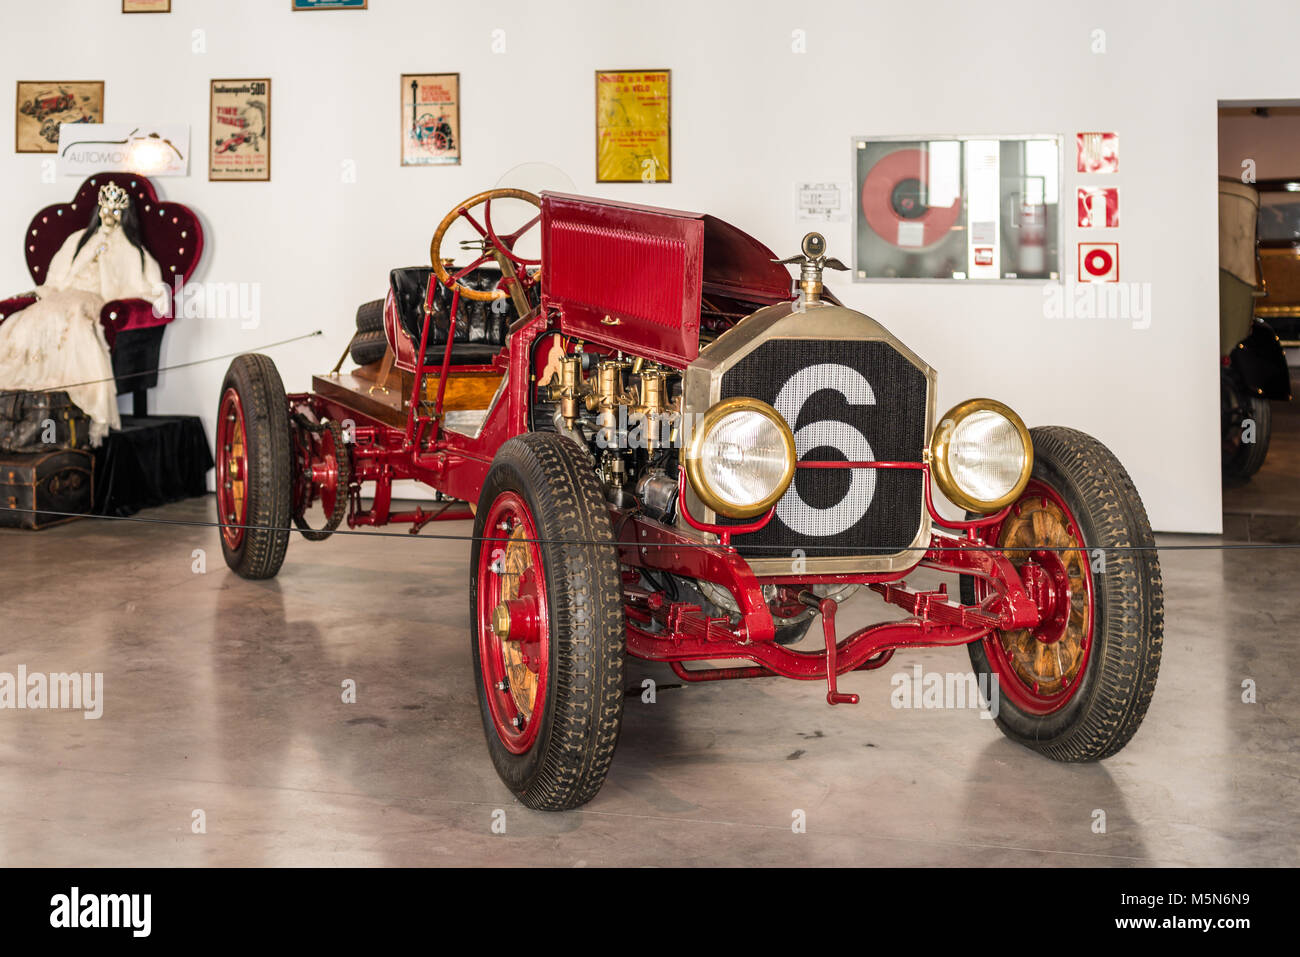 Malaga, Spain - December 7, 2016: A number 6 is painted on the radiator of antique car displayed in Malaga Automobile - Stock Image